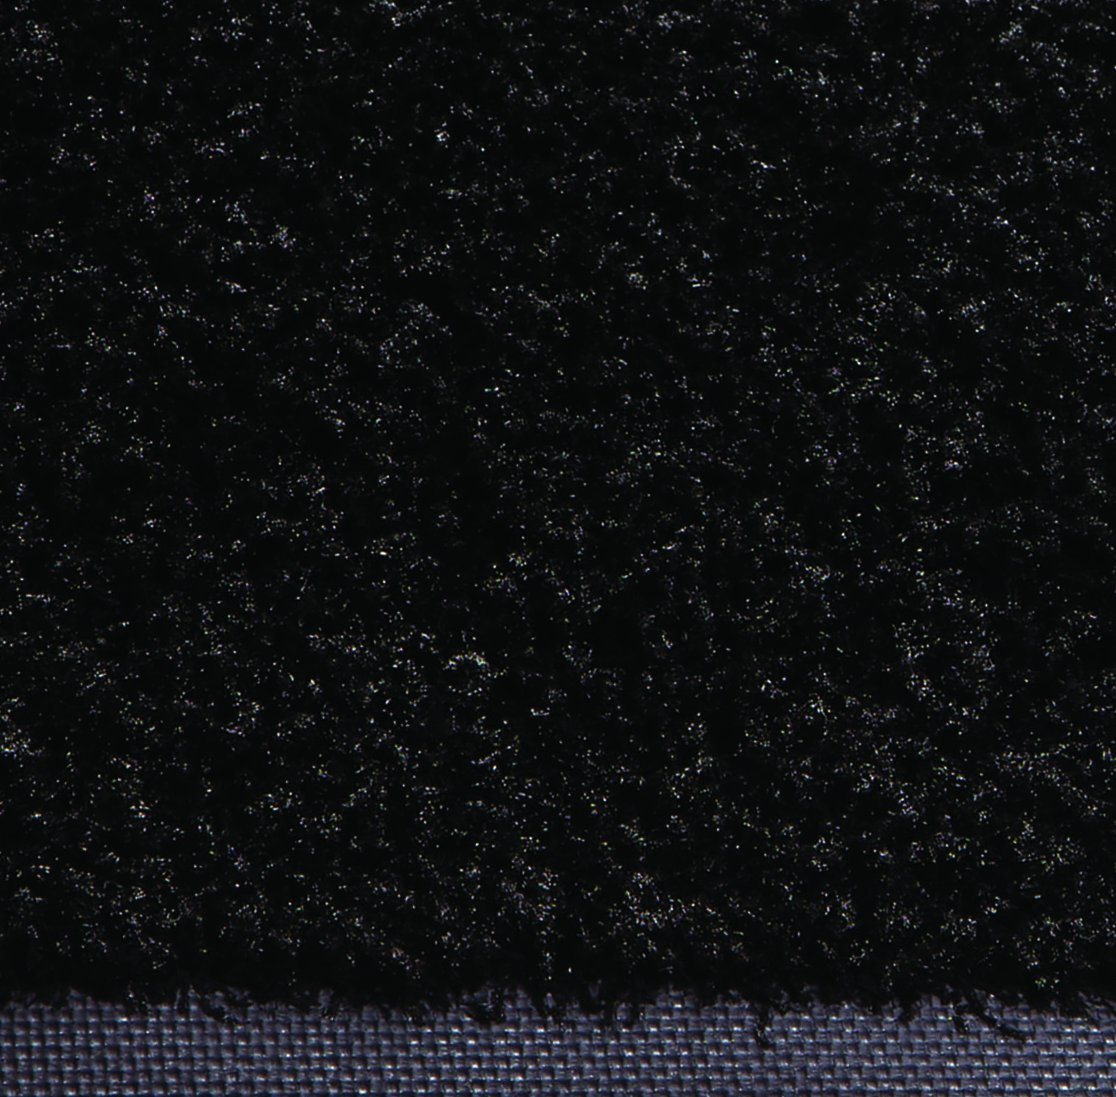 Guardian Platinum Series Indoor Wiper Floor Mat, Rubber with Nylon Carpet, 3'x5', Black by Guardian (Image #1)